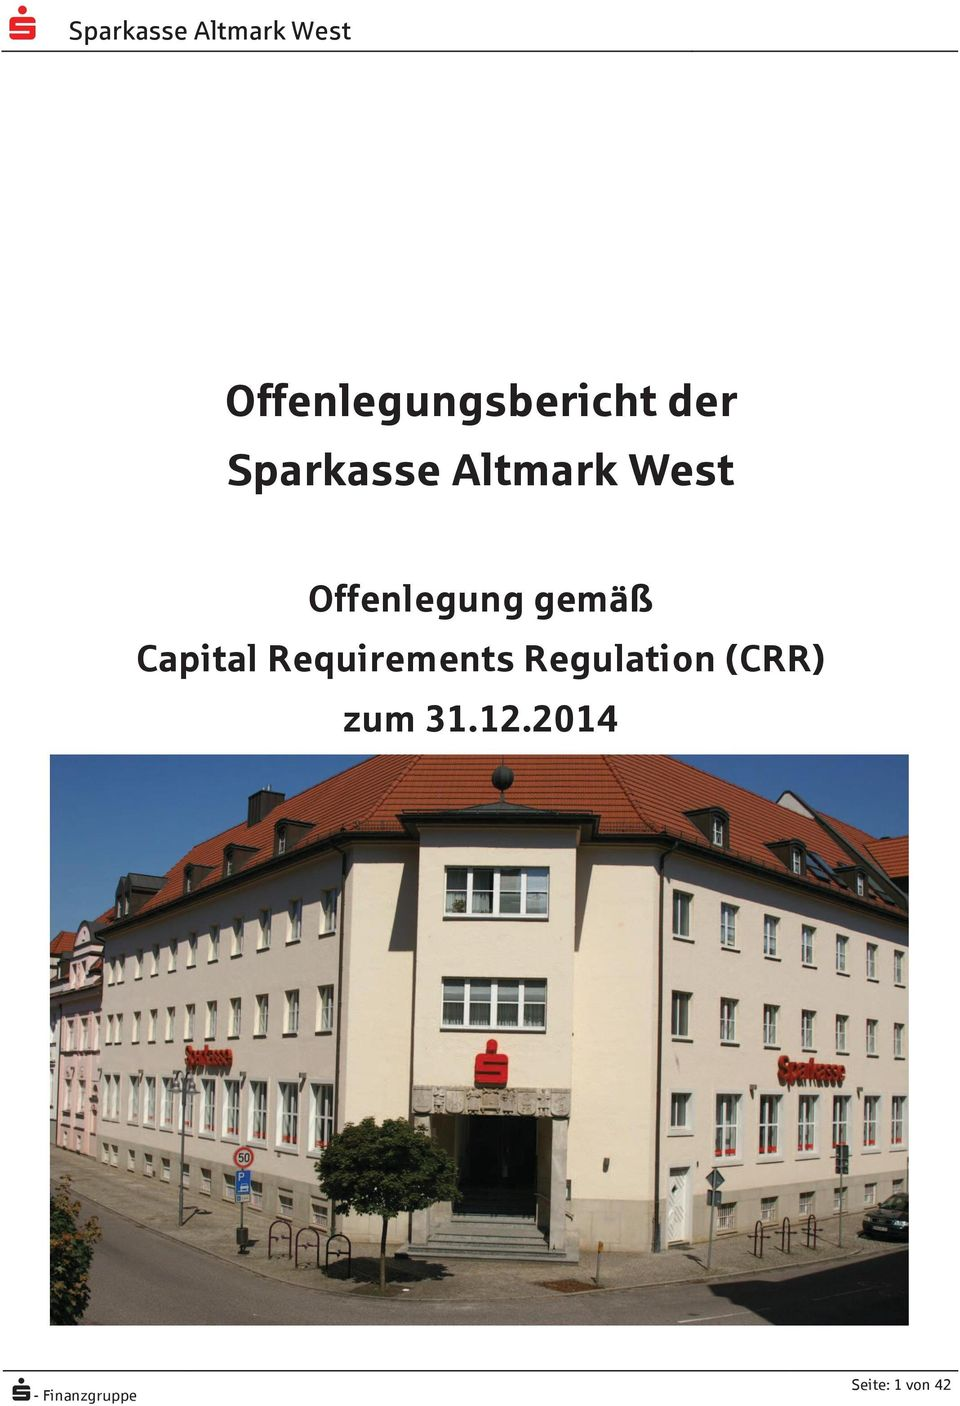 Requirements Regulation